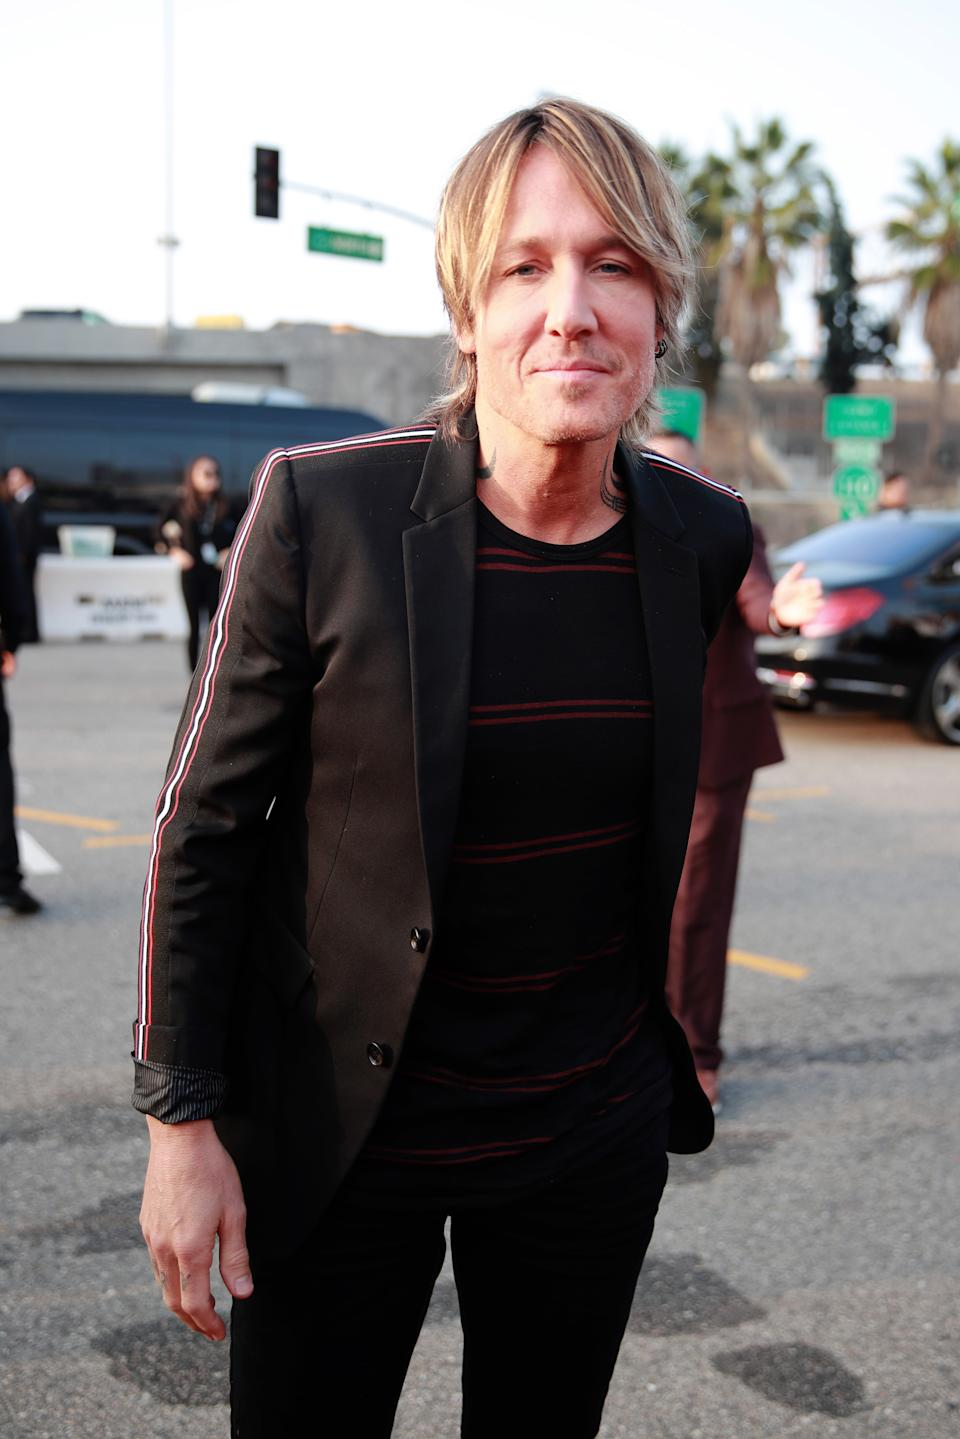 Keith Urban attends the 62nd Annual GRAMMY Awards at STAPLES Center on January 26, 2020 in Los Angeles, California.